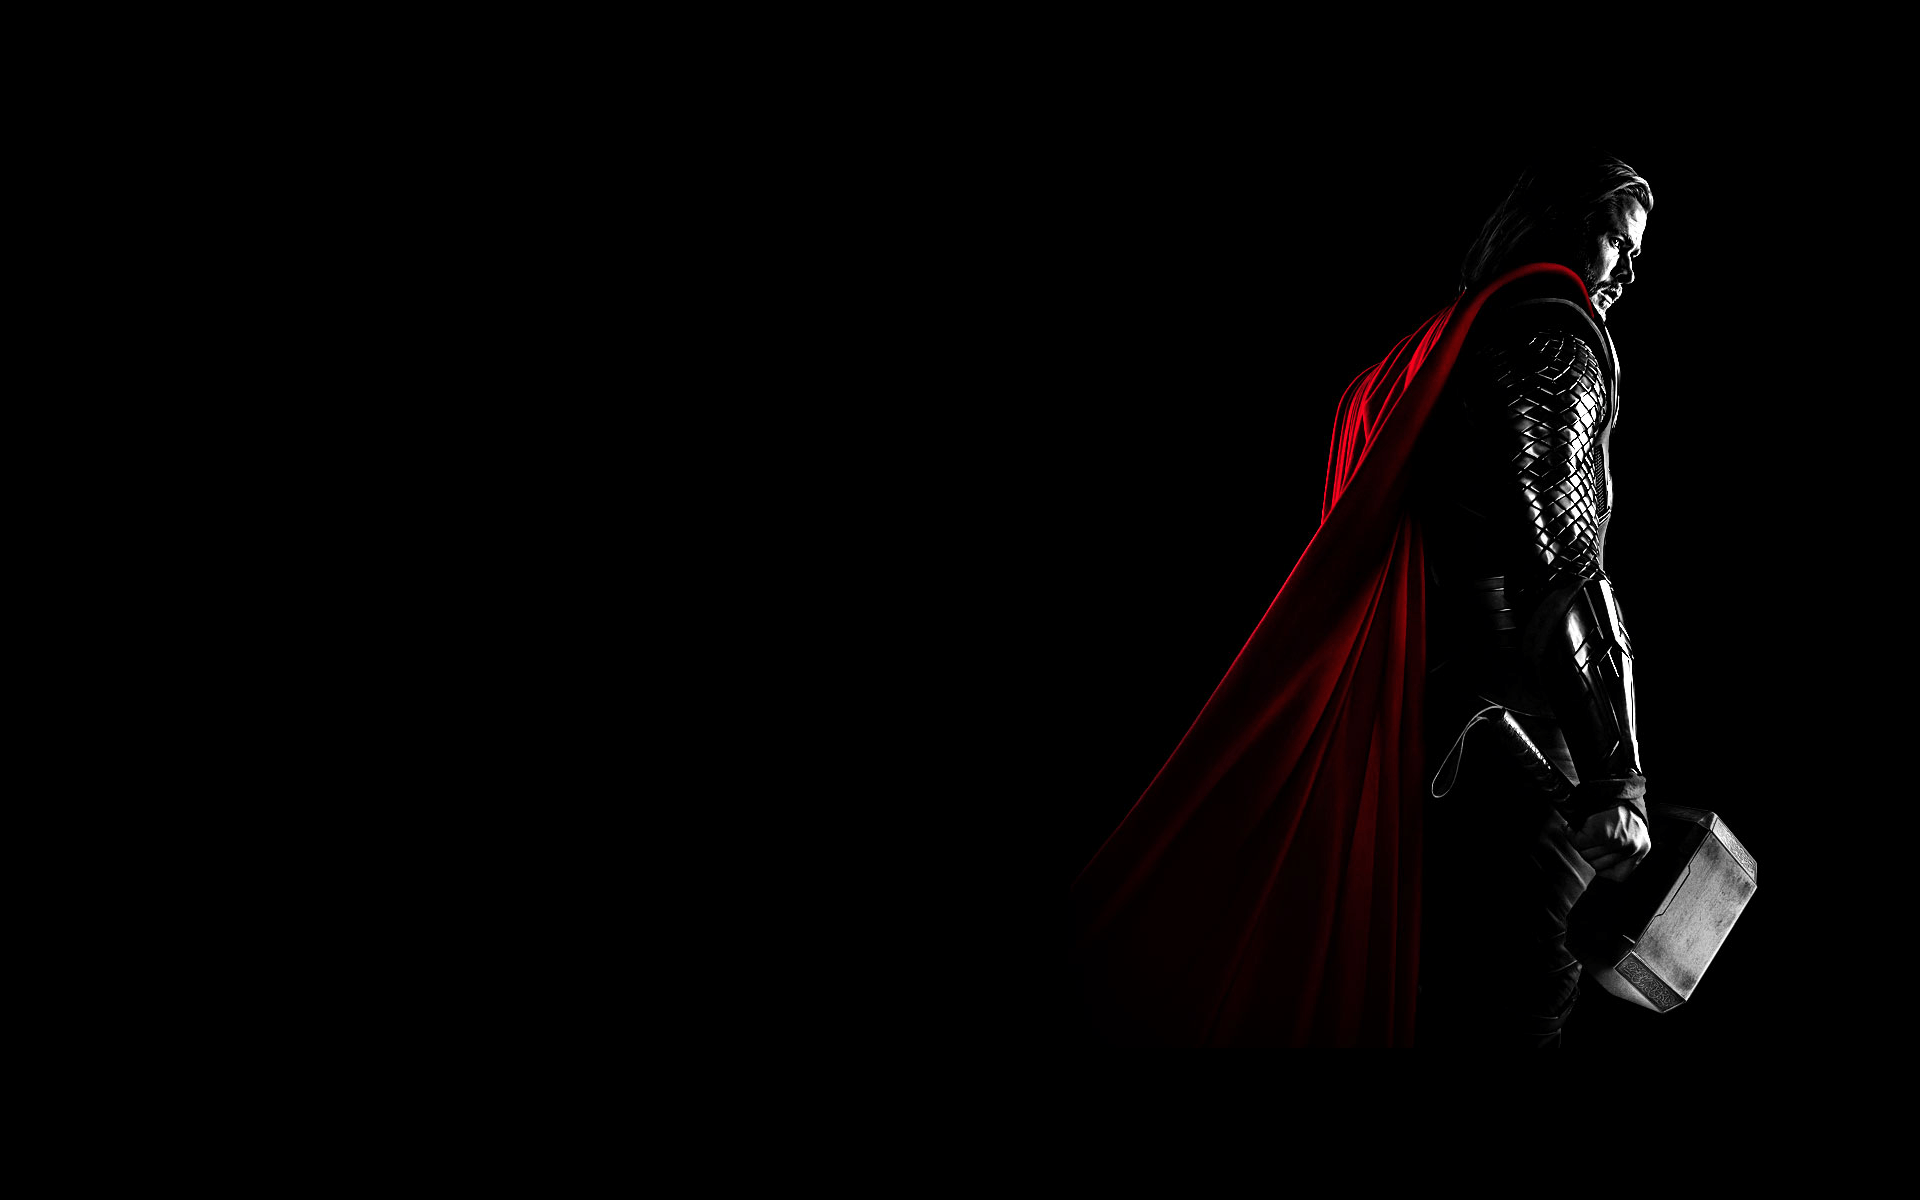 Hd wallpaper thor - 1822657 Png